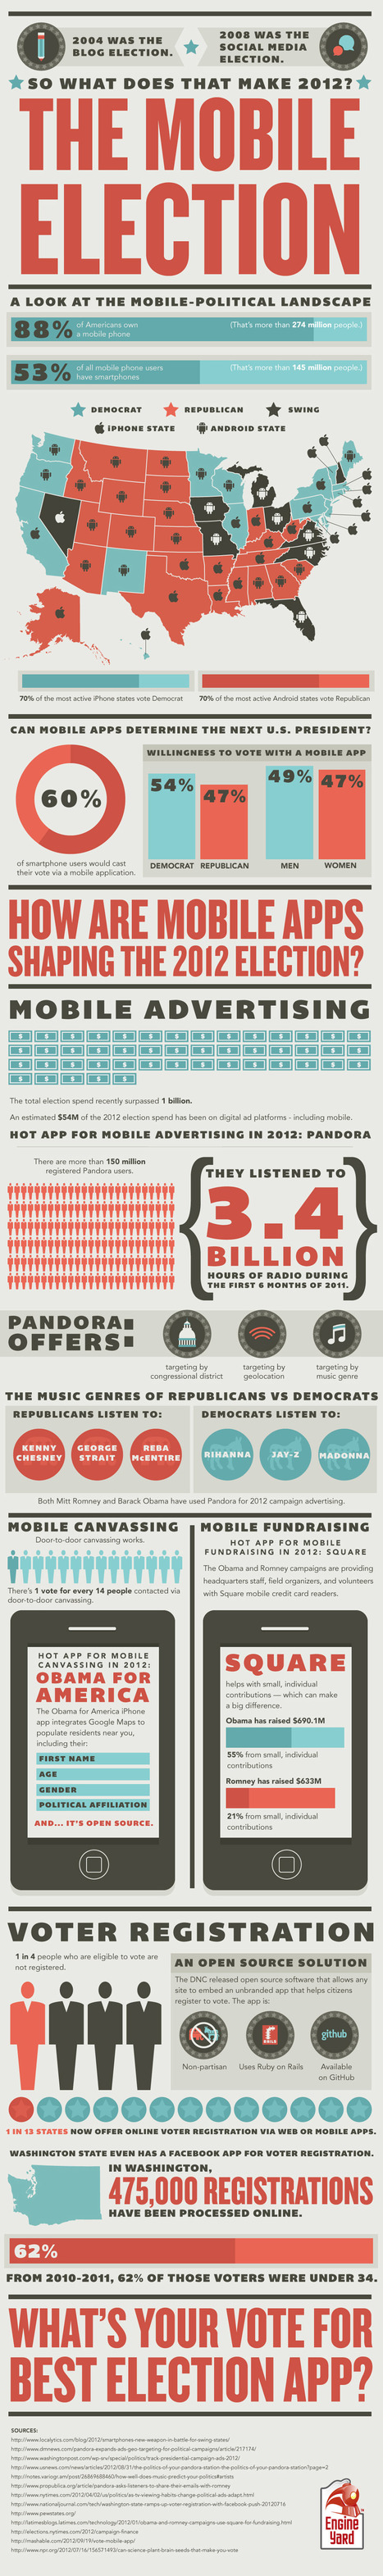 How Are Apps Shaping the 2012 Election? #INFOGRAPHIC | Social Media Marketing For Lawyers | Scoop.it